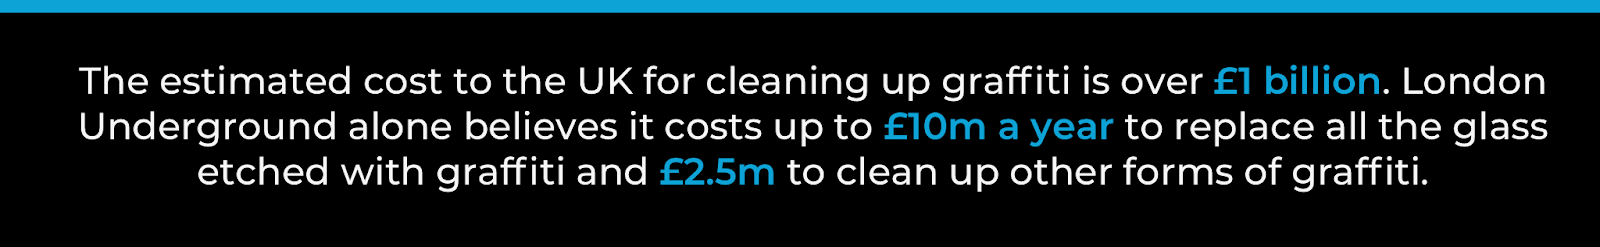 The estimated cost to the UK for cleaning up graffiti is over £1 billion. London Underground alone believe it costs up to £10m a year to replace all the glass etched with graffiti and £2.5m to clean up other forms of graffiti.